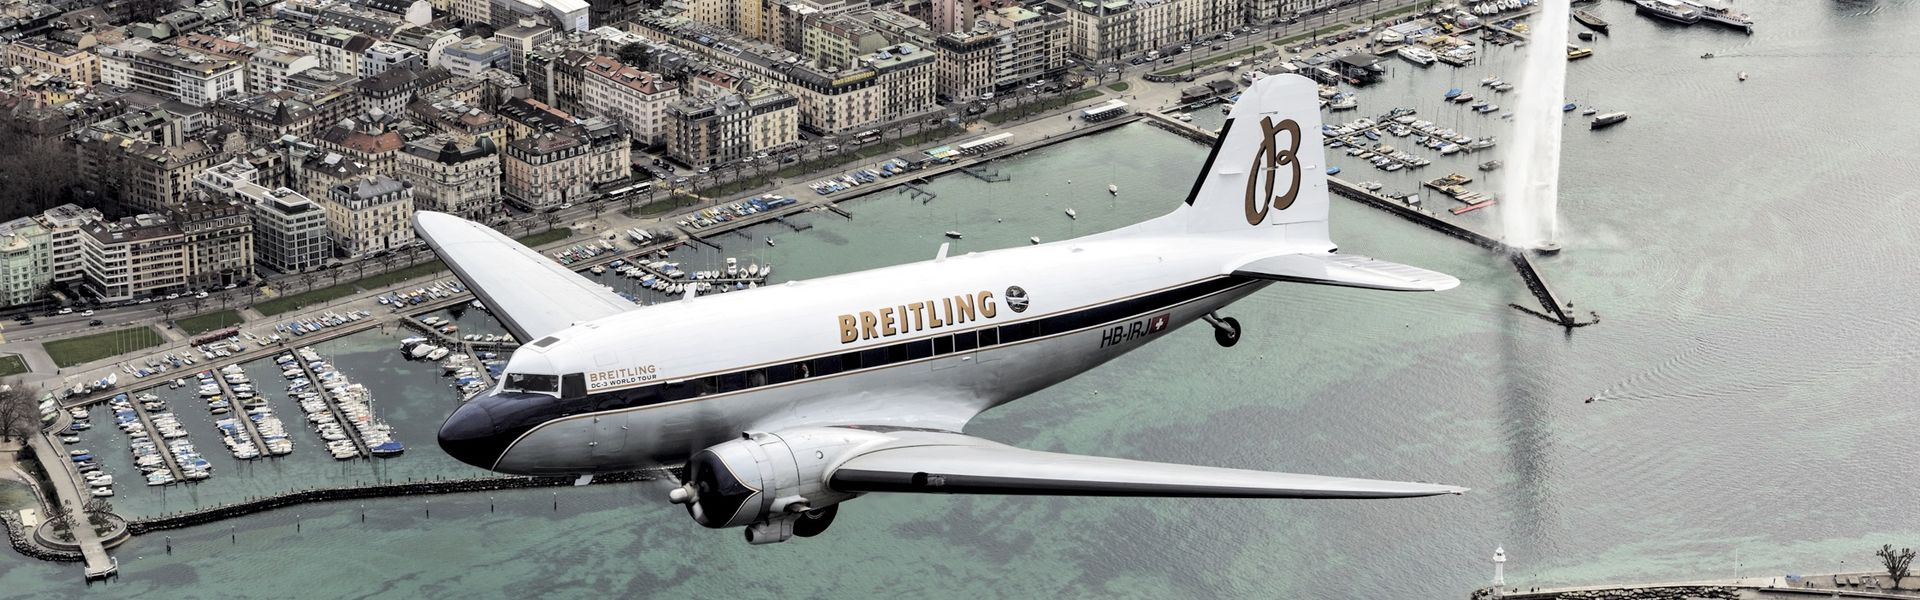 Globetrotting with the Breitling DC-3